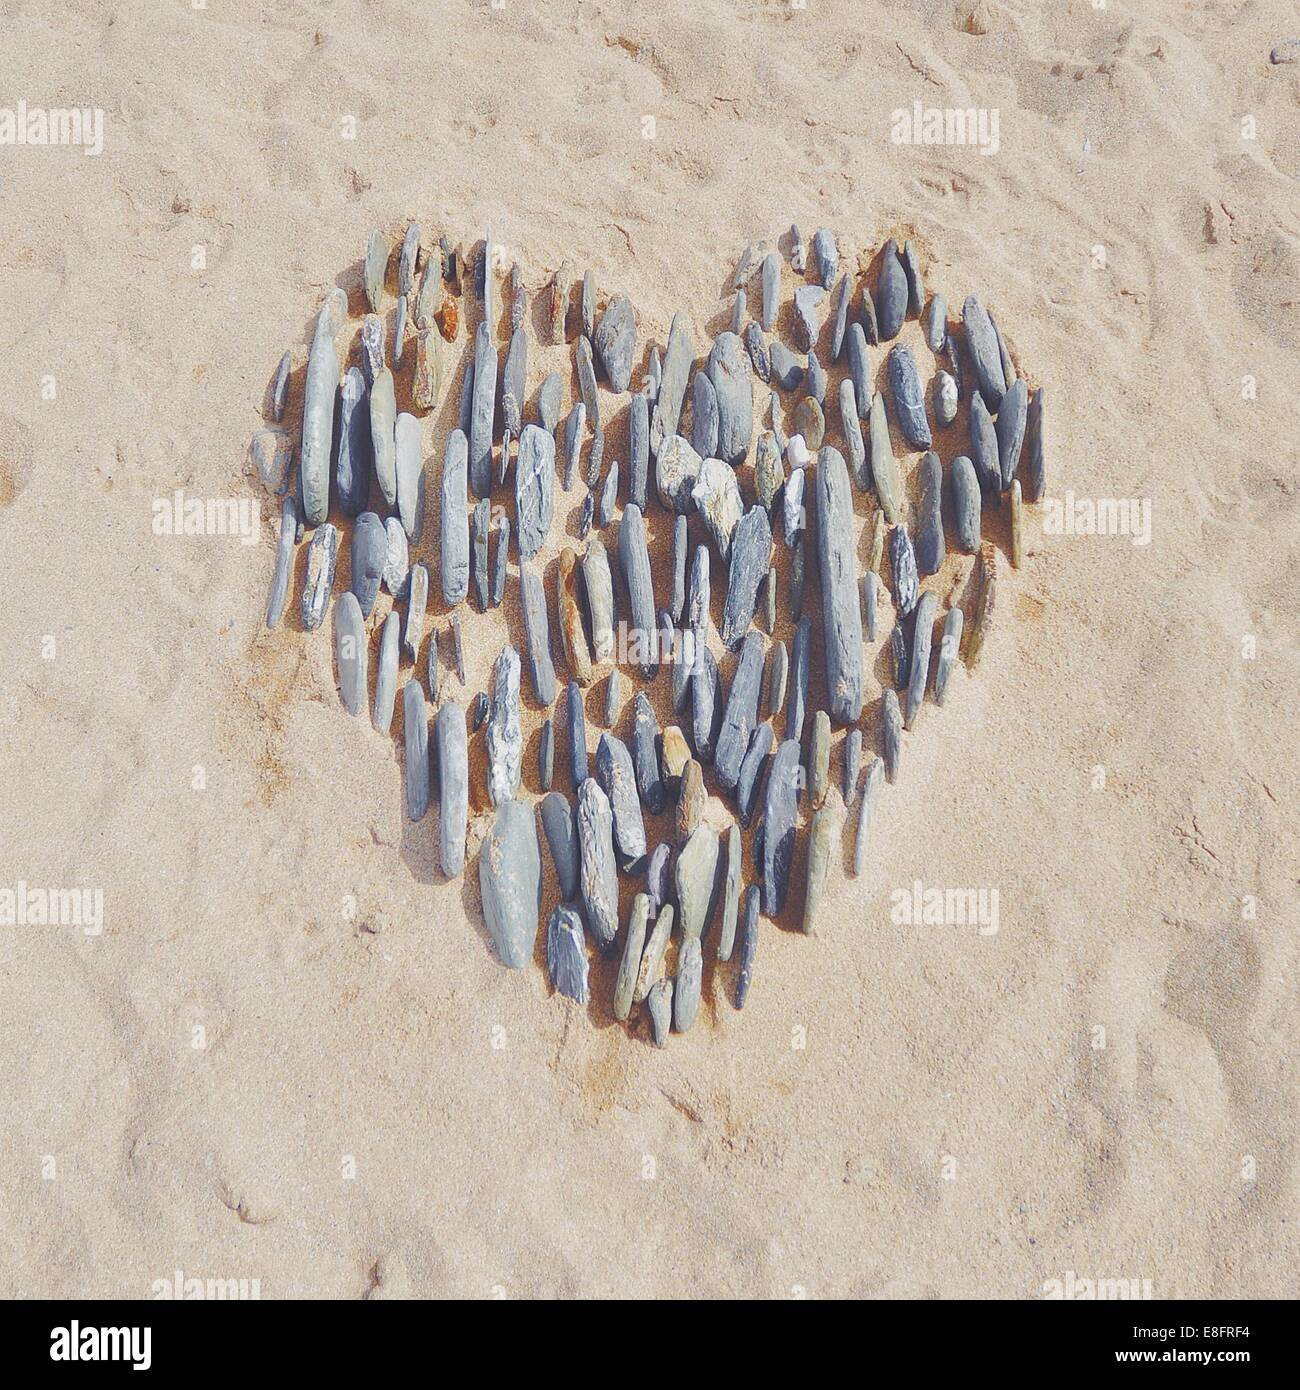 Heart in the sand made with pebbles - Stock Image